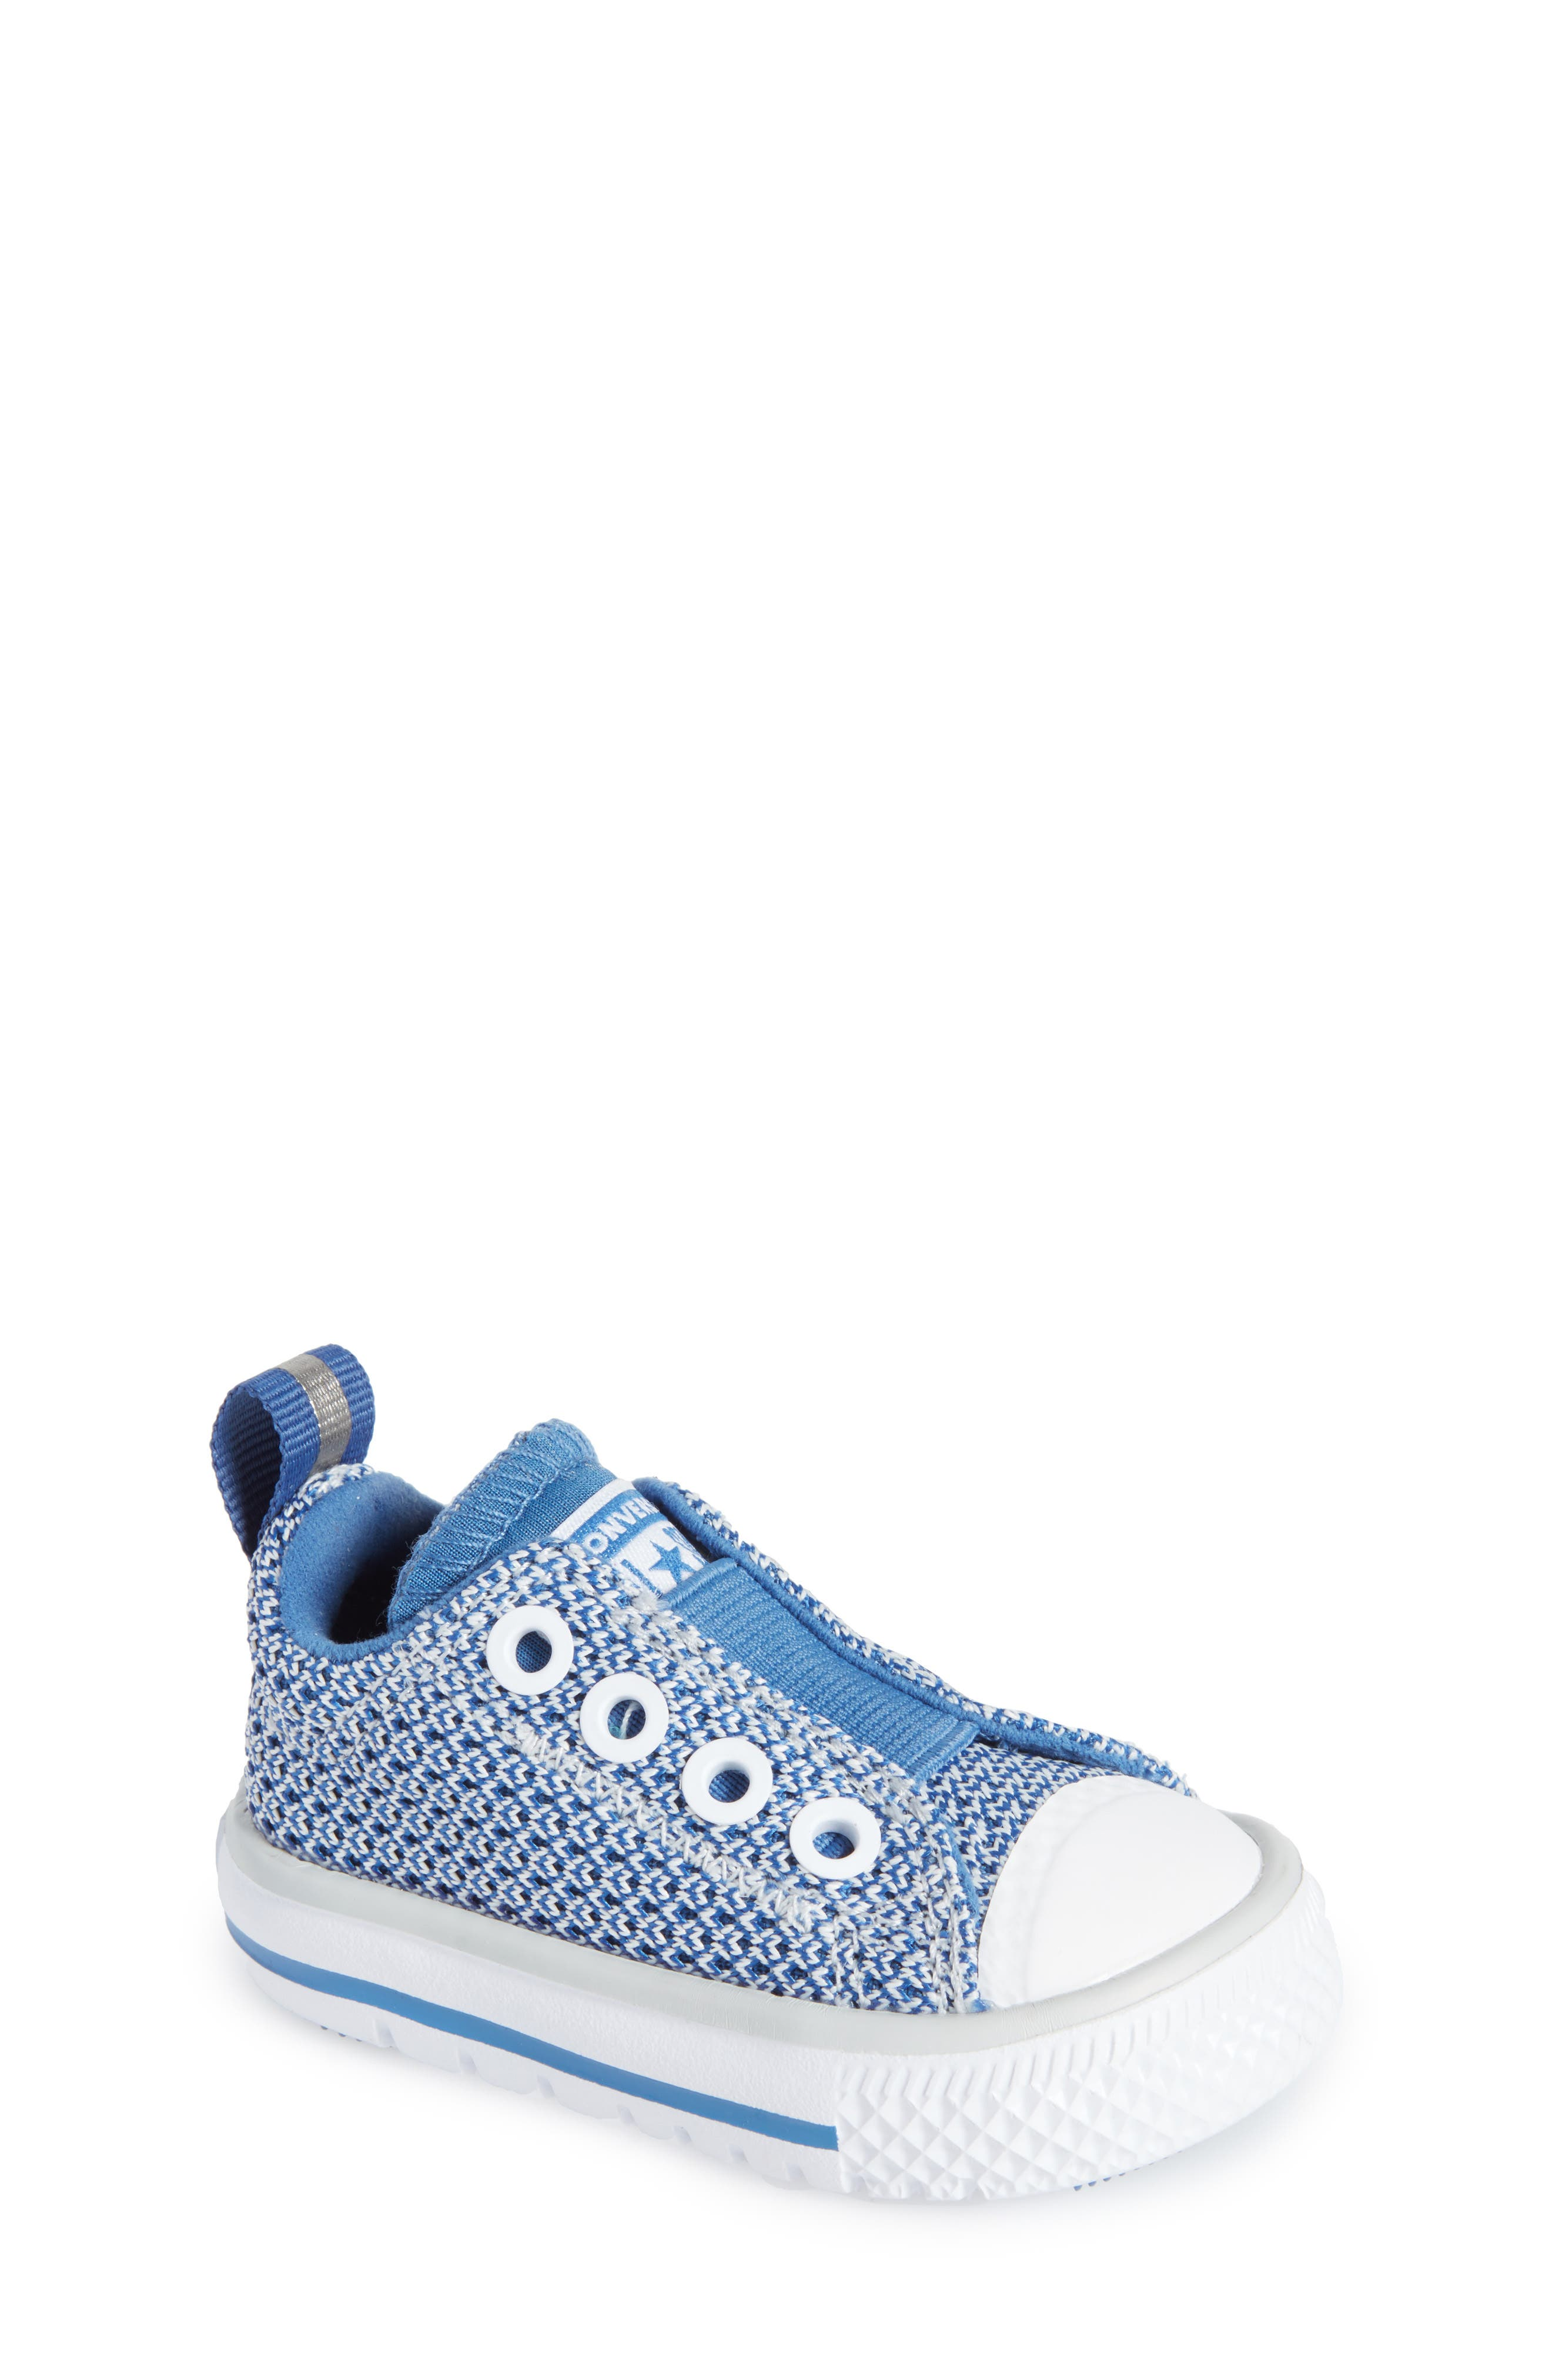 Chuck Taylor<sup>®</sup> All Star<sup>®</sup> Hyper Lite Slip-On Sneaker,                         Main,                         color, 020